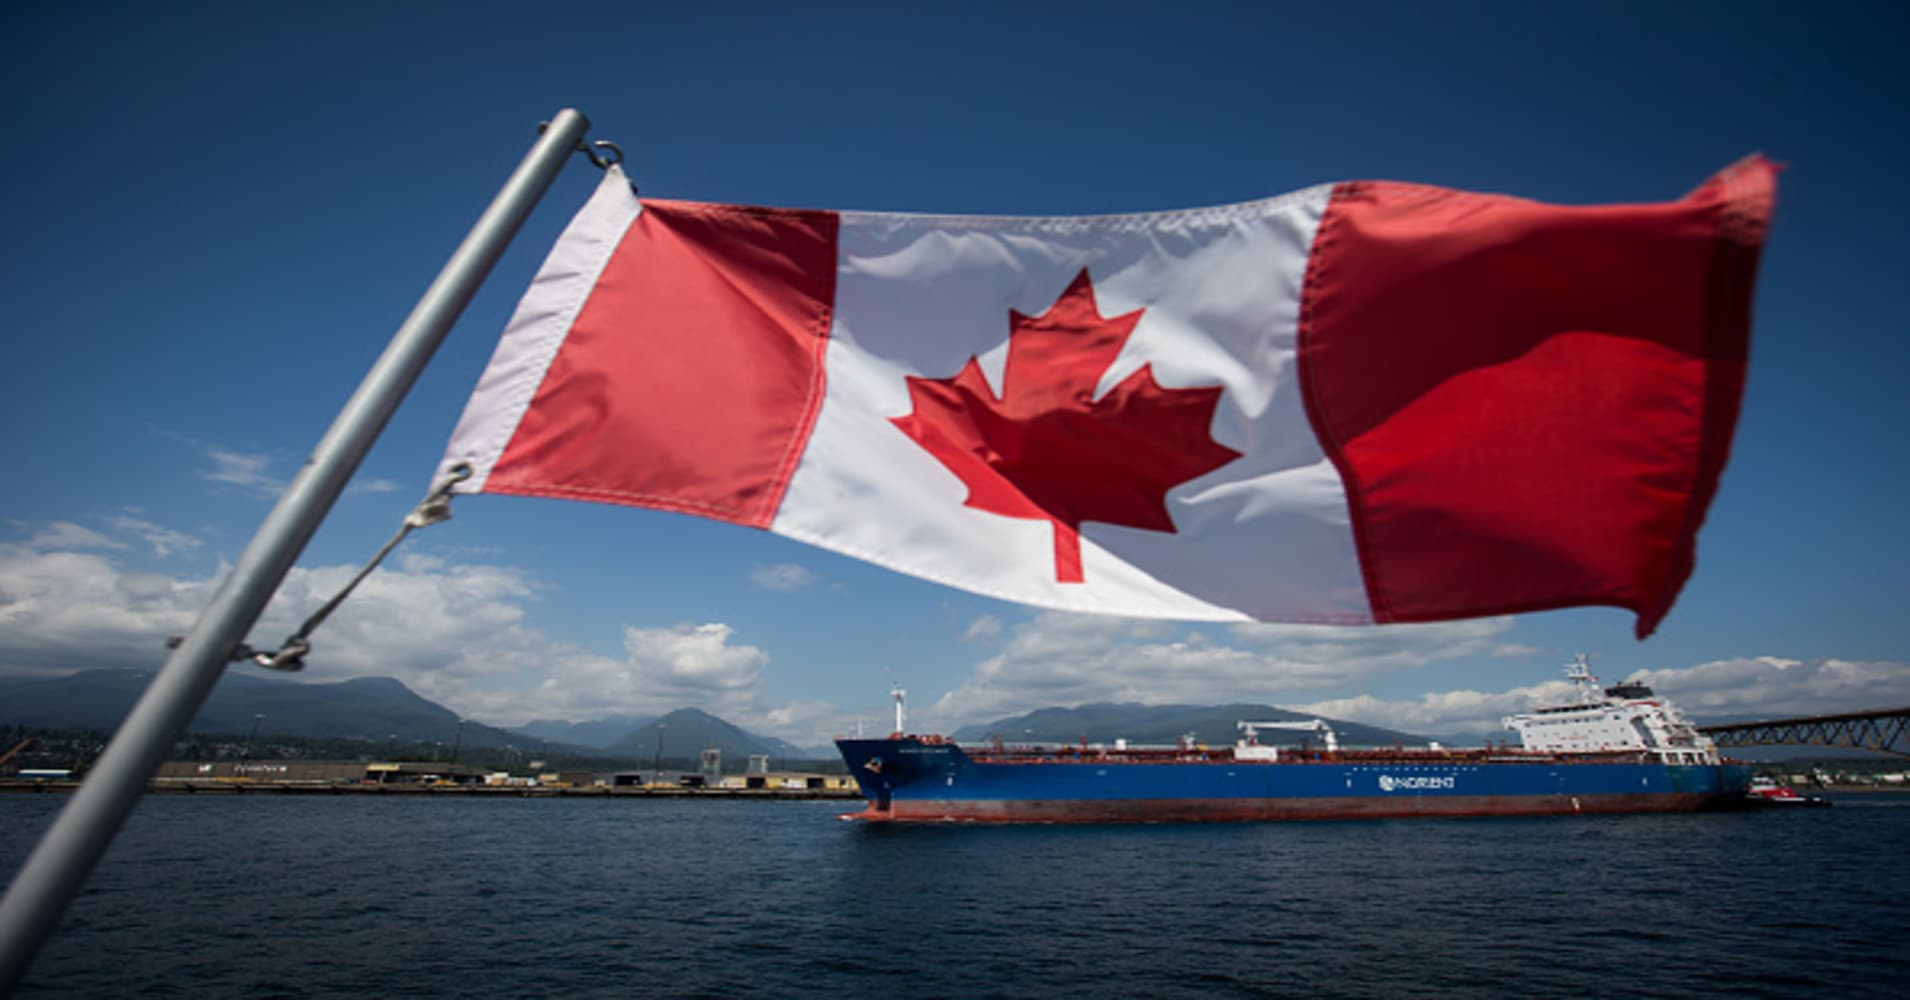 Canada makes retaliatory tariffs official: 'We will not back down'